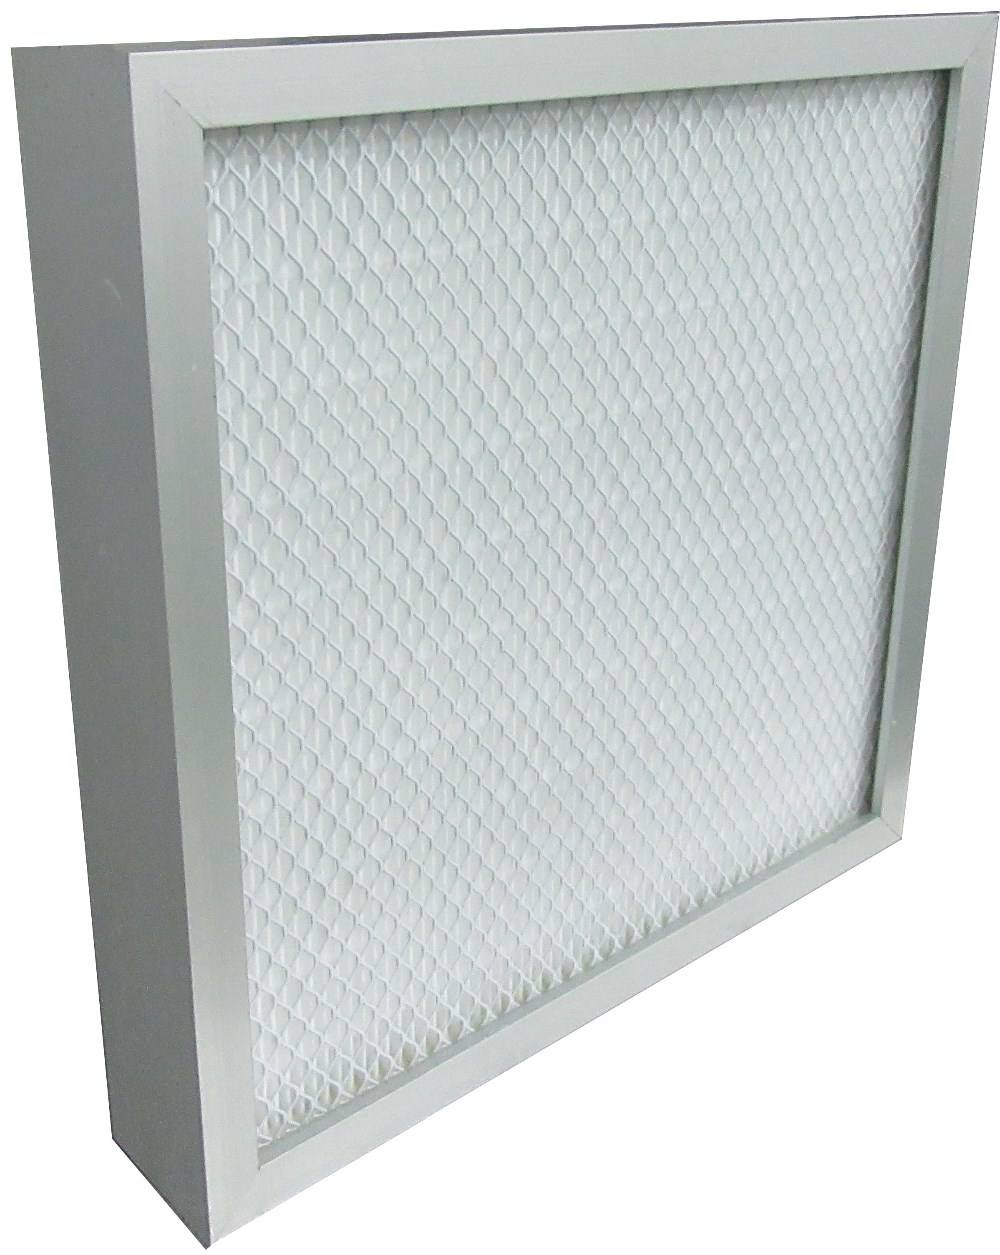 Panel AHU Ventilation HVAC Fiber Air Purifier Hepa Filter